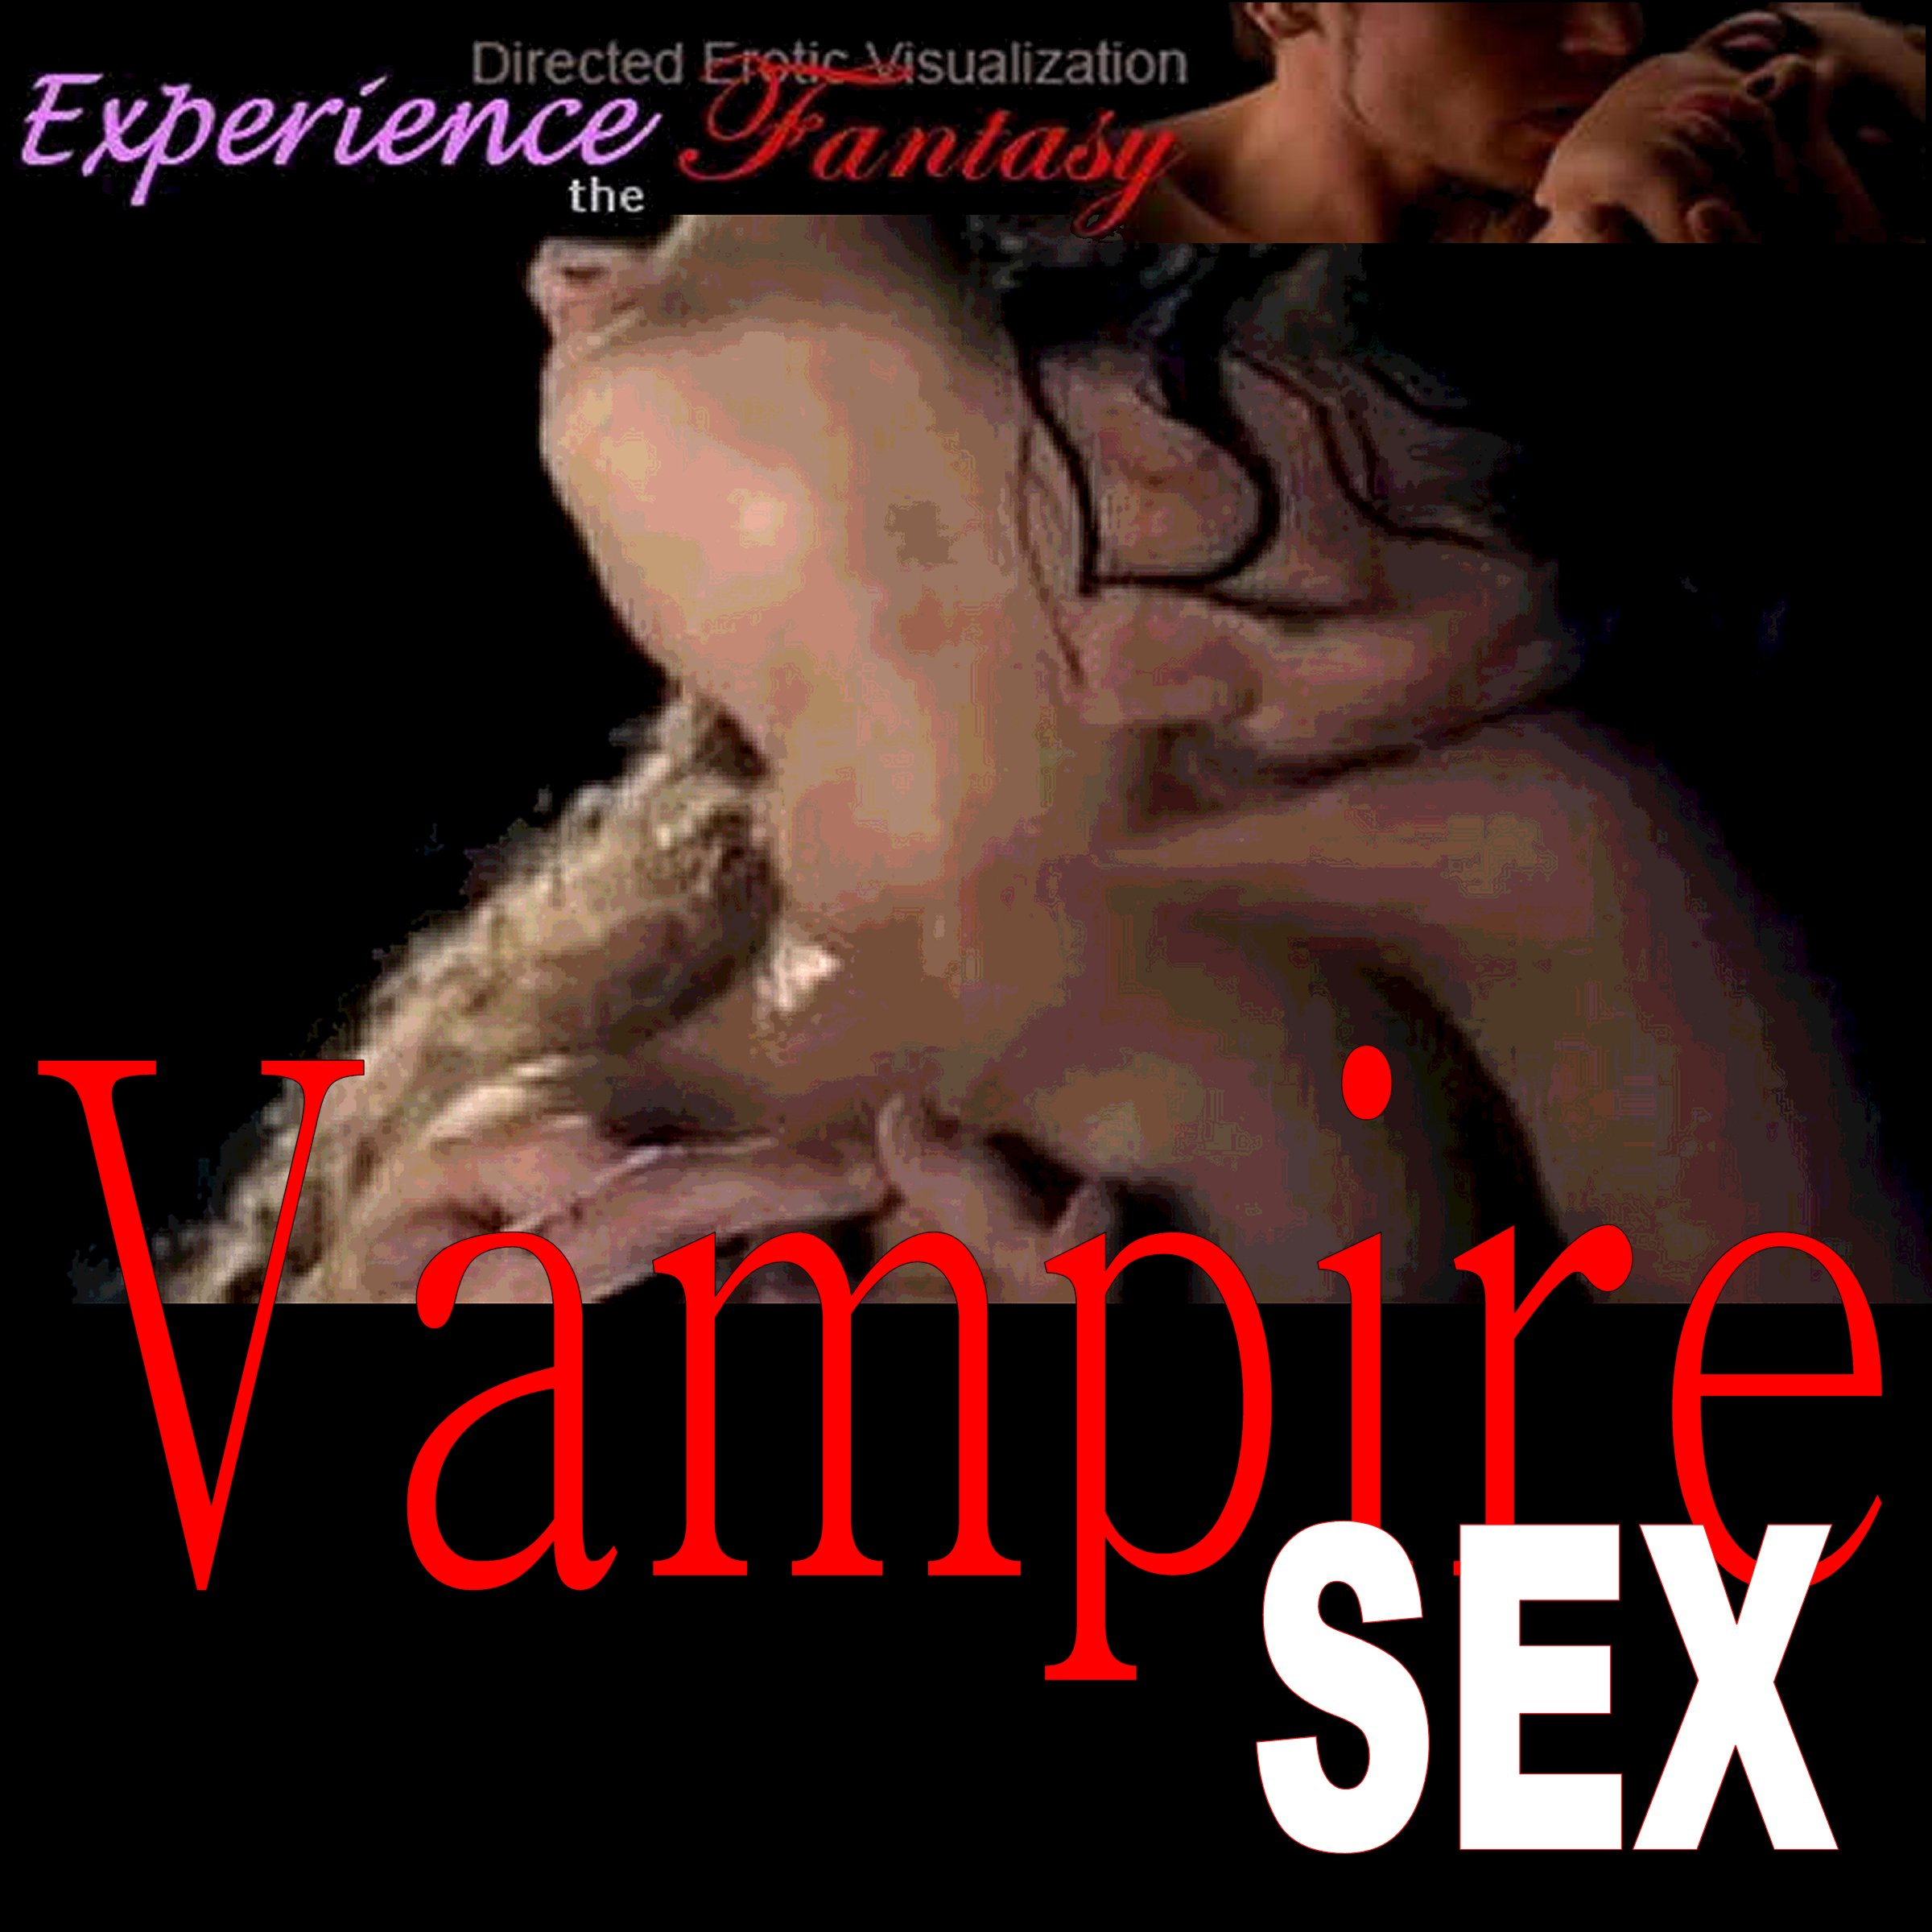 Vampire sex hot movie download adult movie